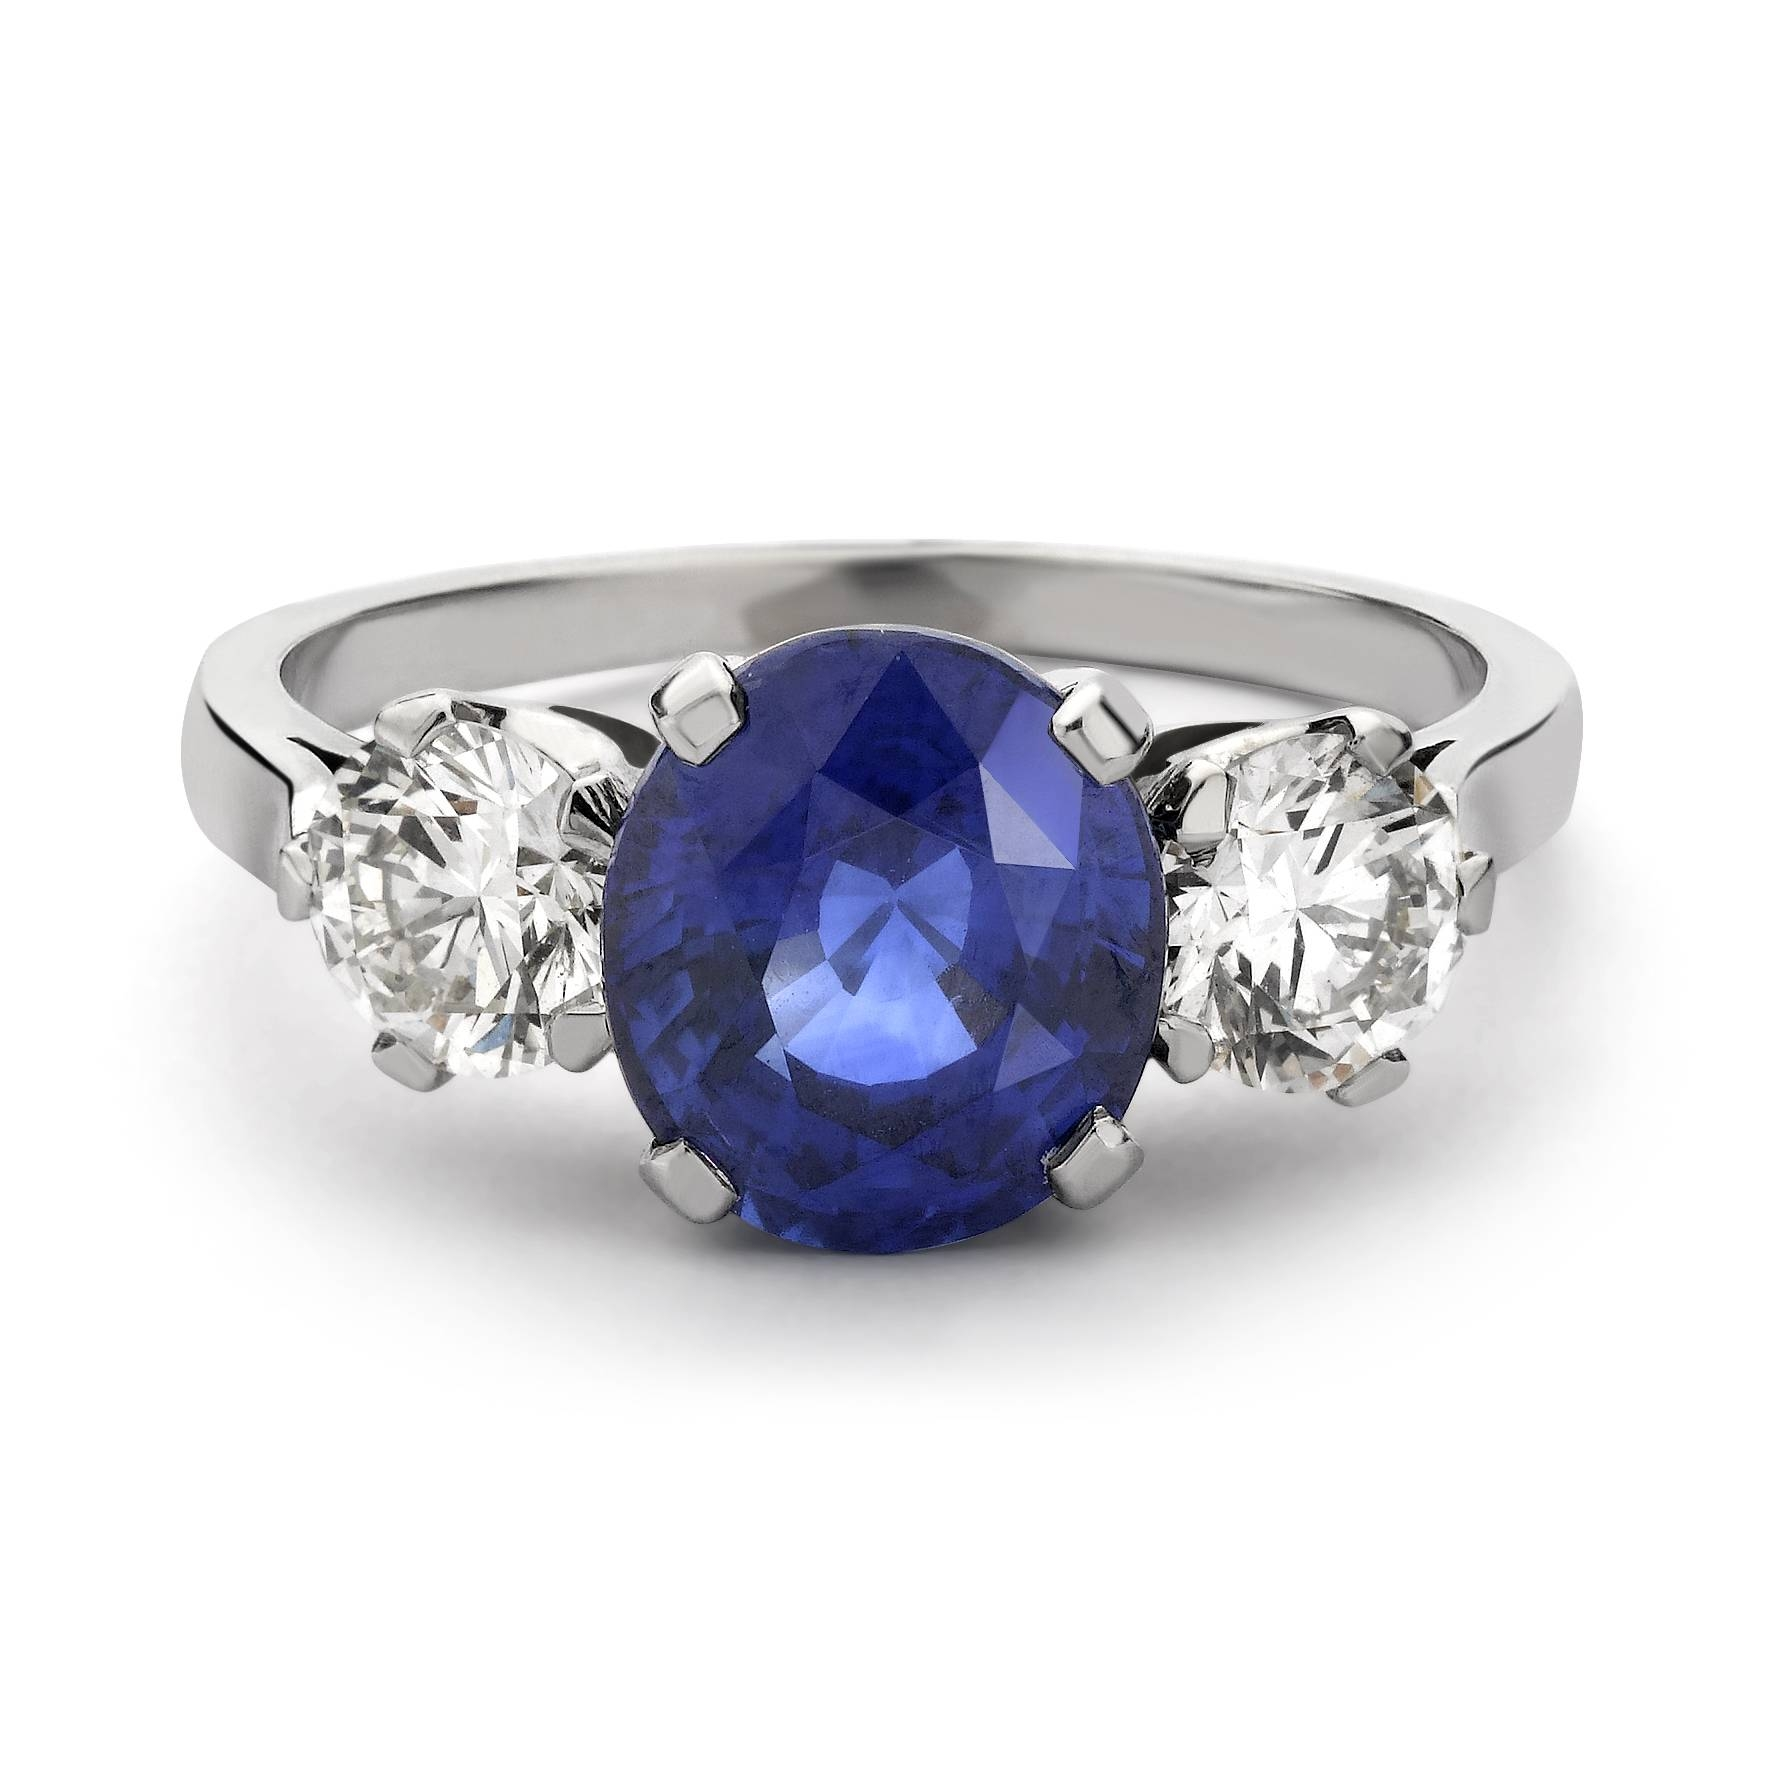 Engagement Rings : P Amazing Diamond Rings With Sapphires 18Ct Within Wedding Rings With Sapphire And Diamonds (View 9 of 15)